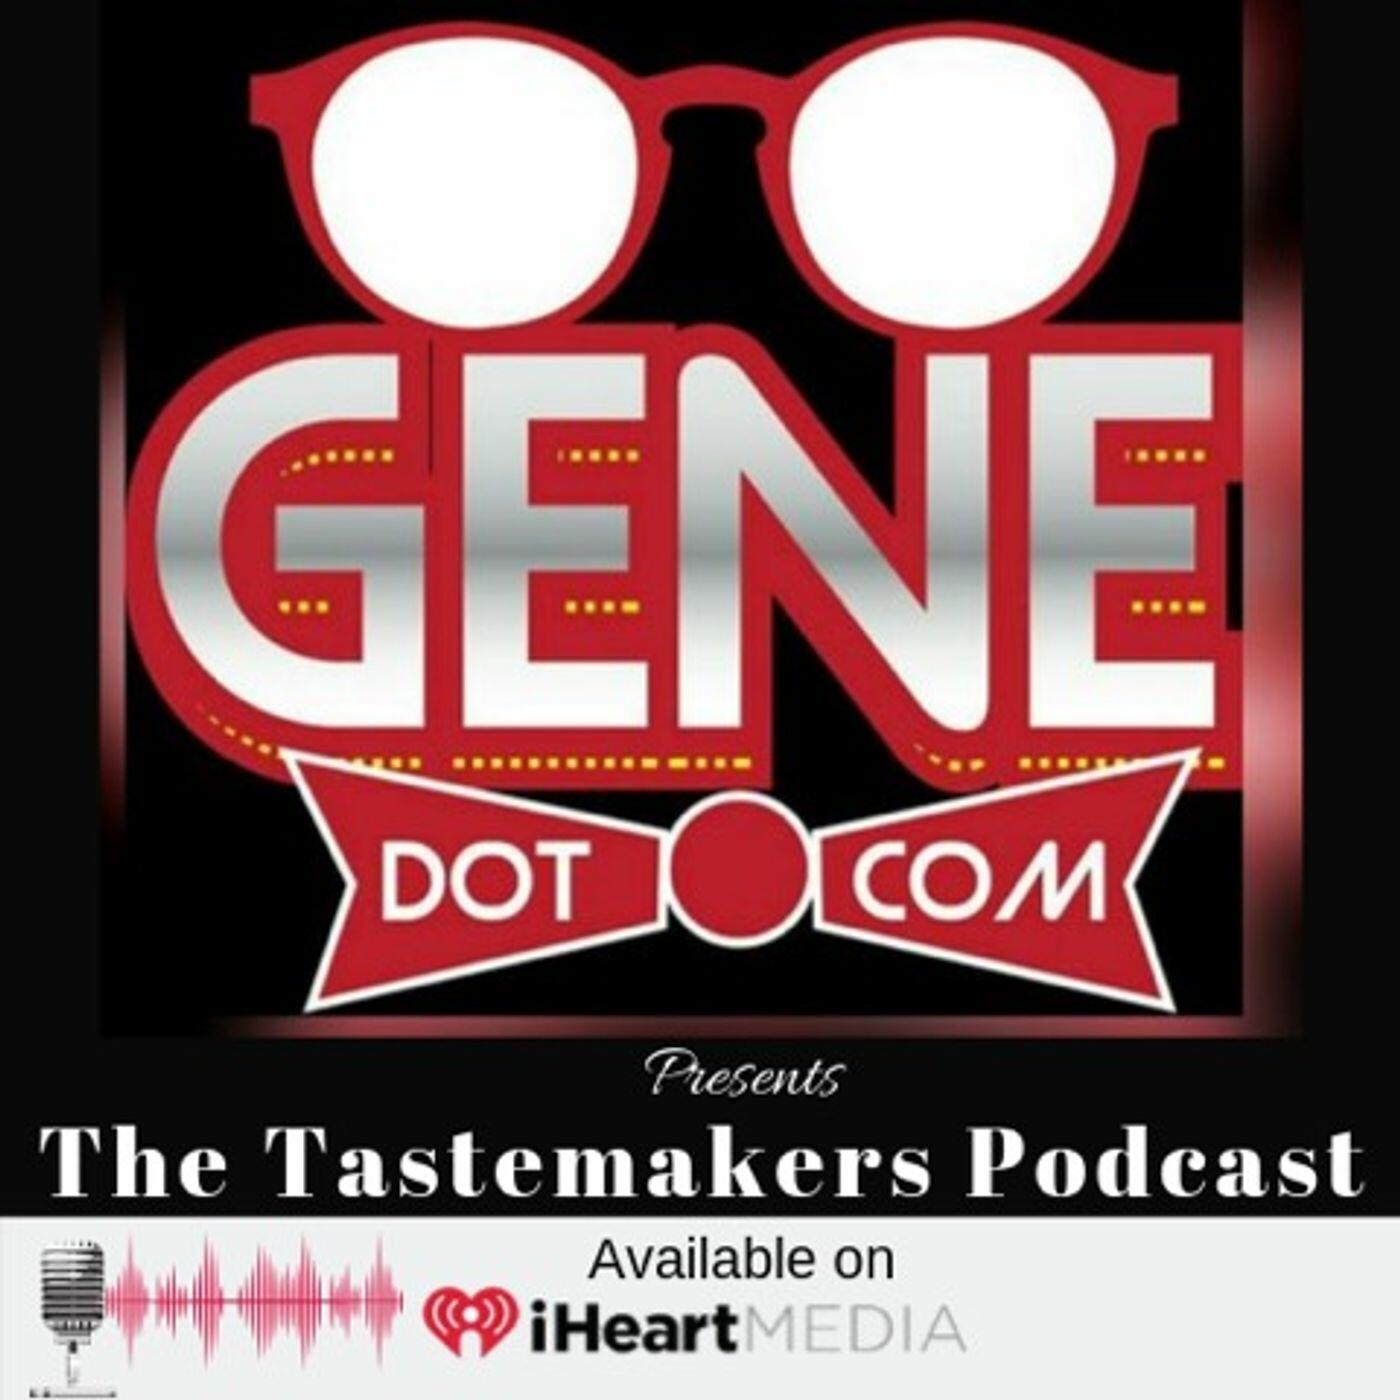 Listen Free to The Tastemakers Podcast on iHeartRadio Podcasts | iHeartRadio